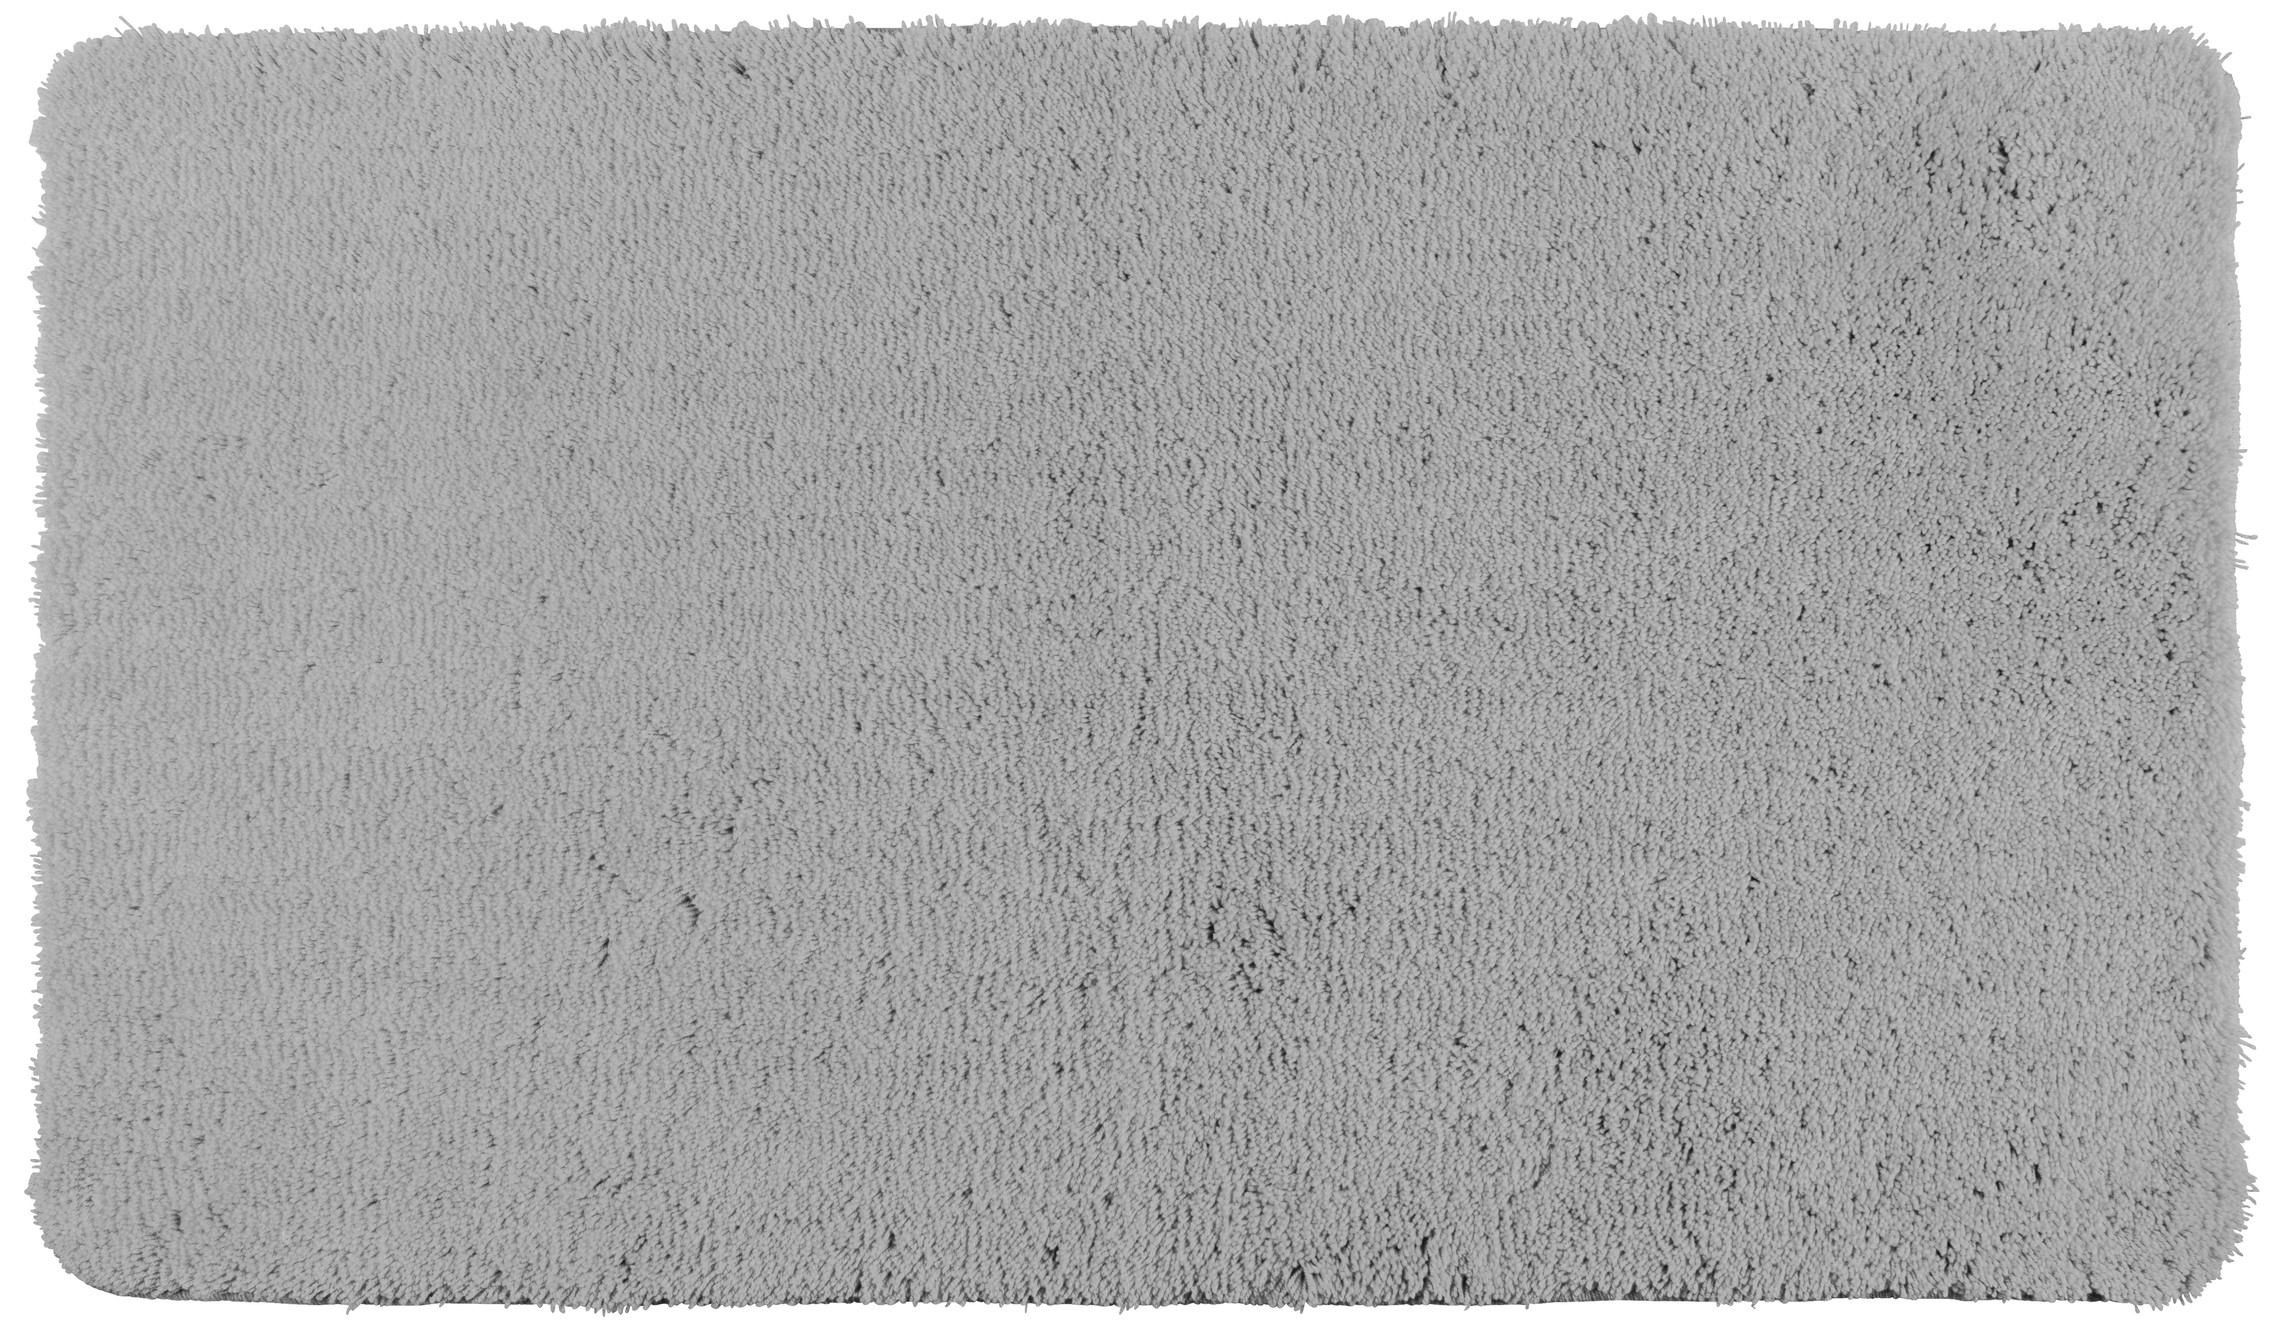 Wenko Badteppich Belize Light Grey, 60 x 90 cm, Mikrofaser